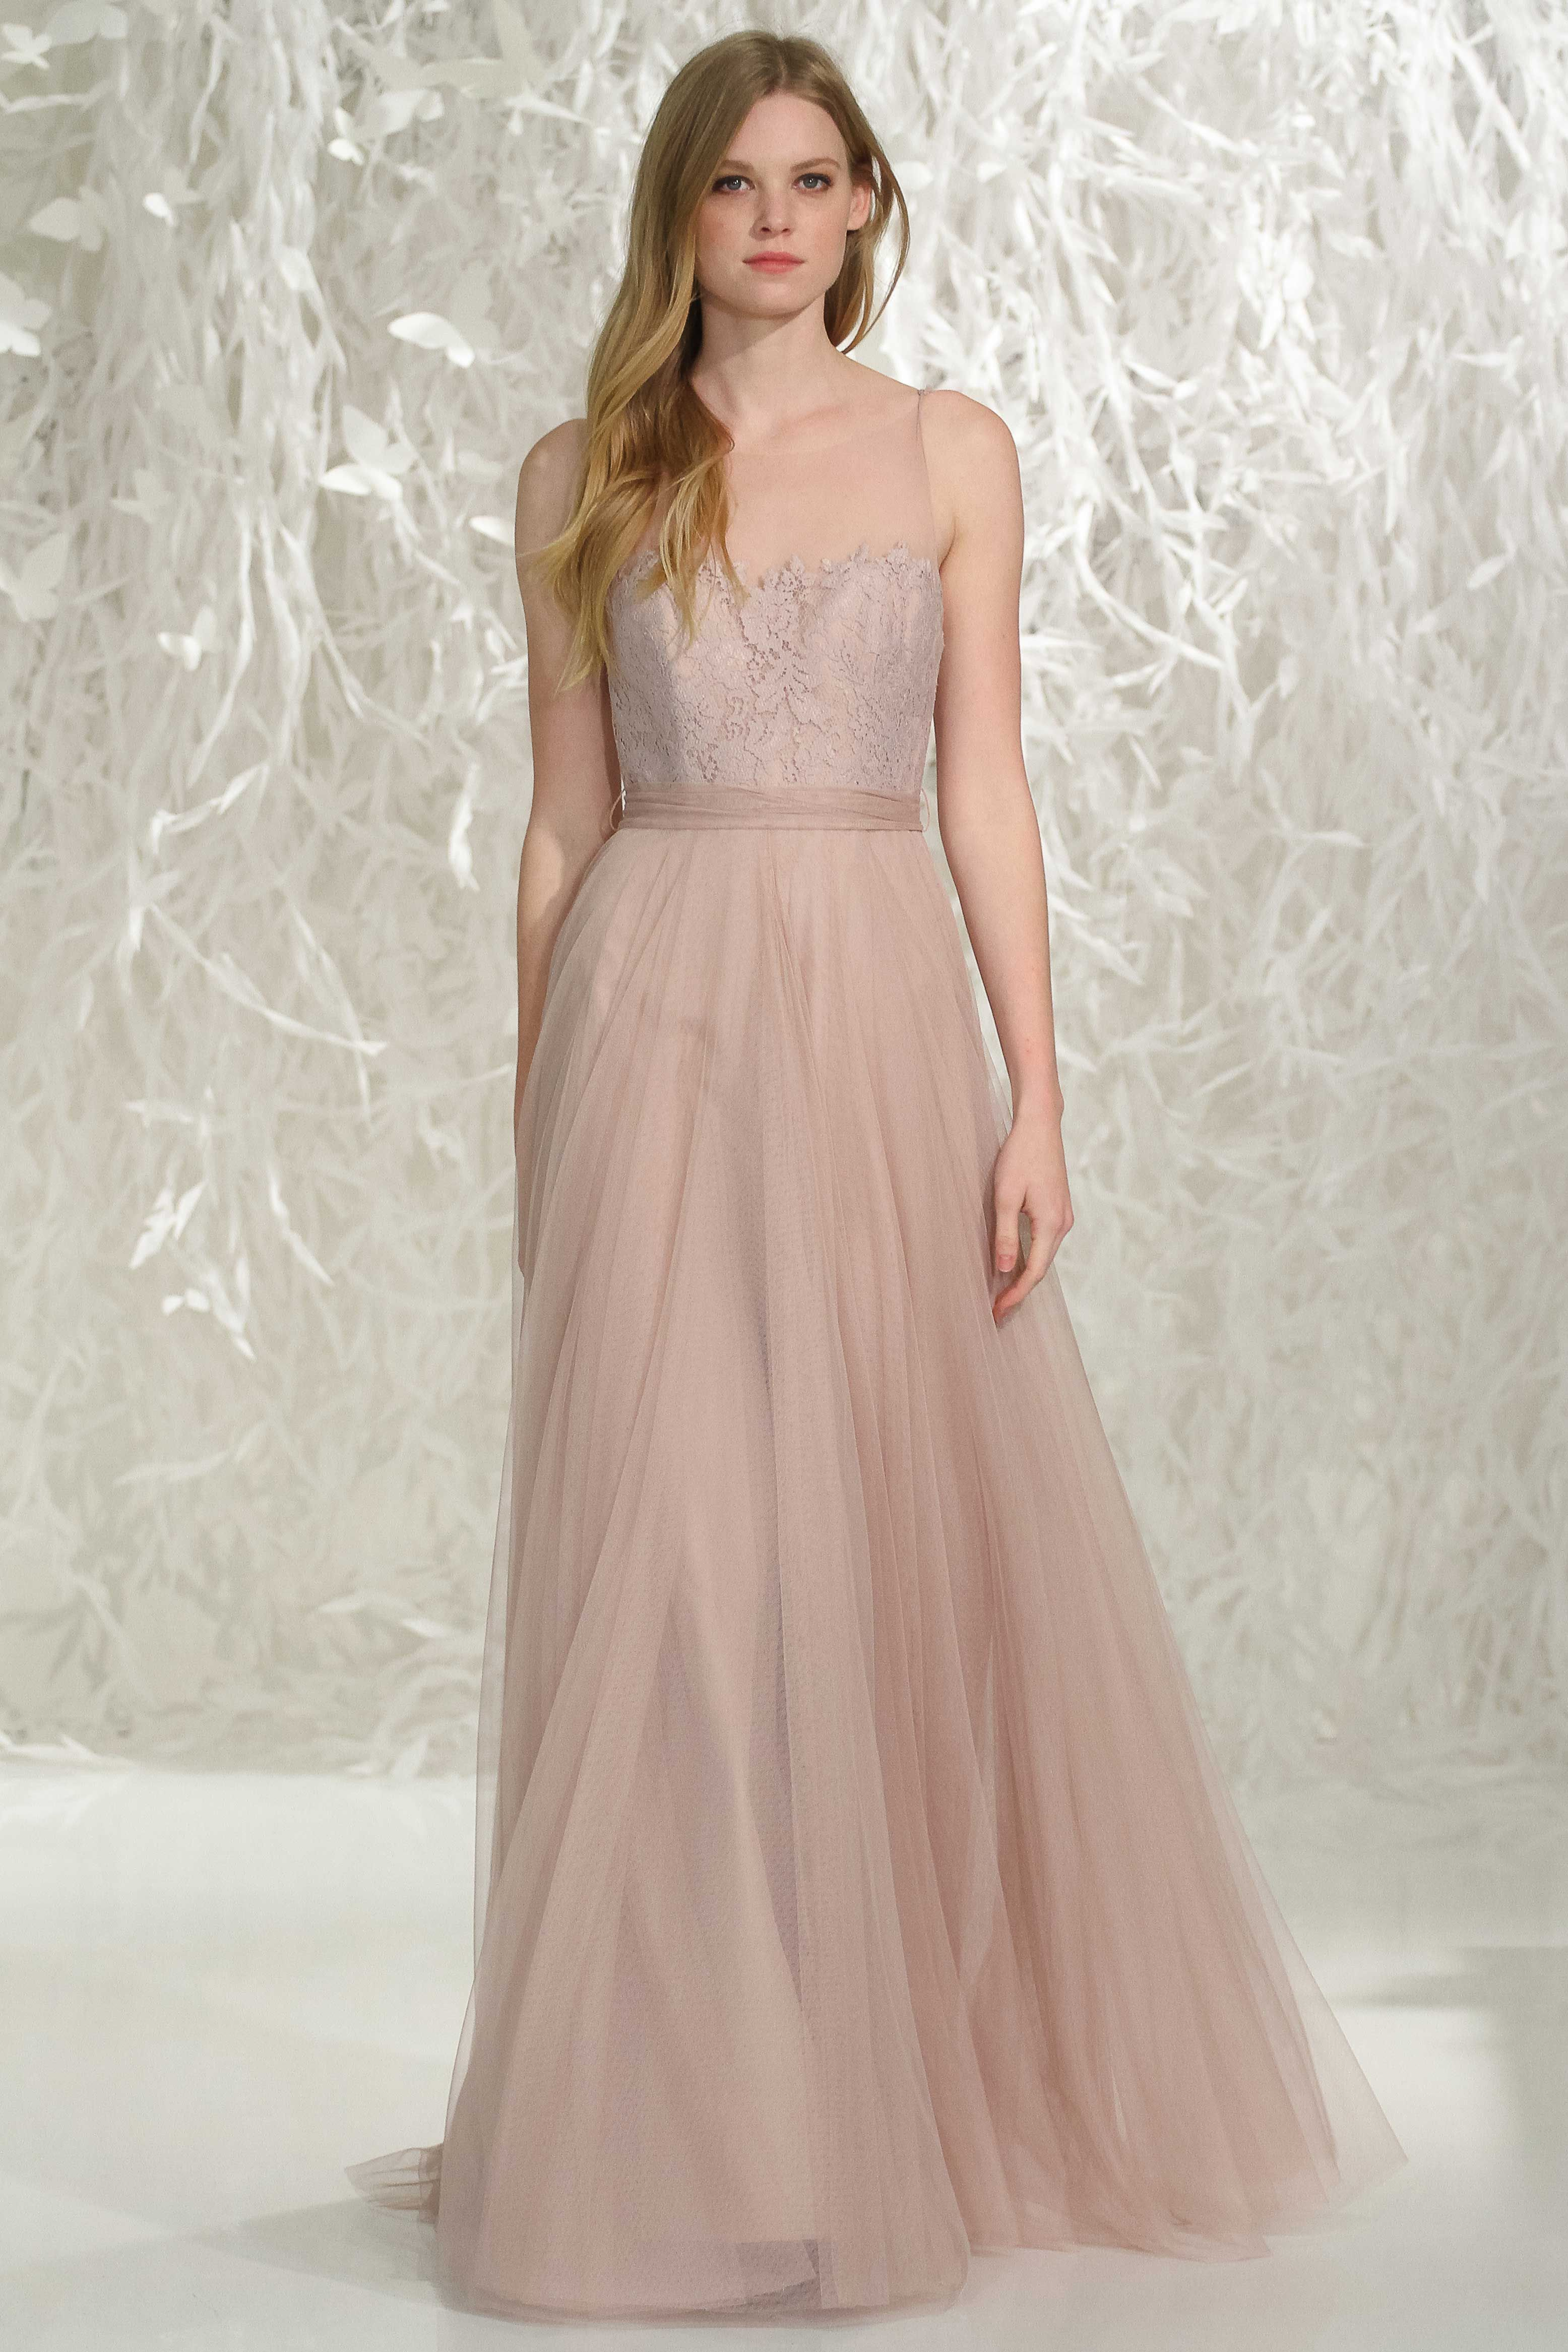 Graceful lace and chiffon bridesmaid gowns by watters 2016 gowns graceful lace and chiffon bridesmaid gowns by watters 2016 ombrellifo Choice Image